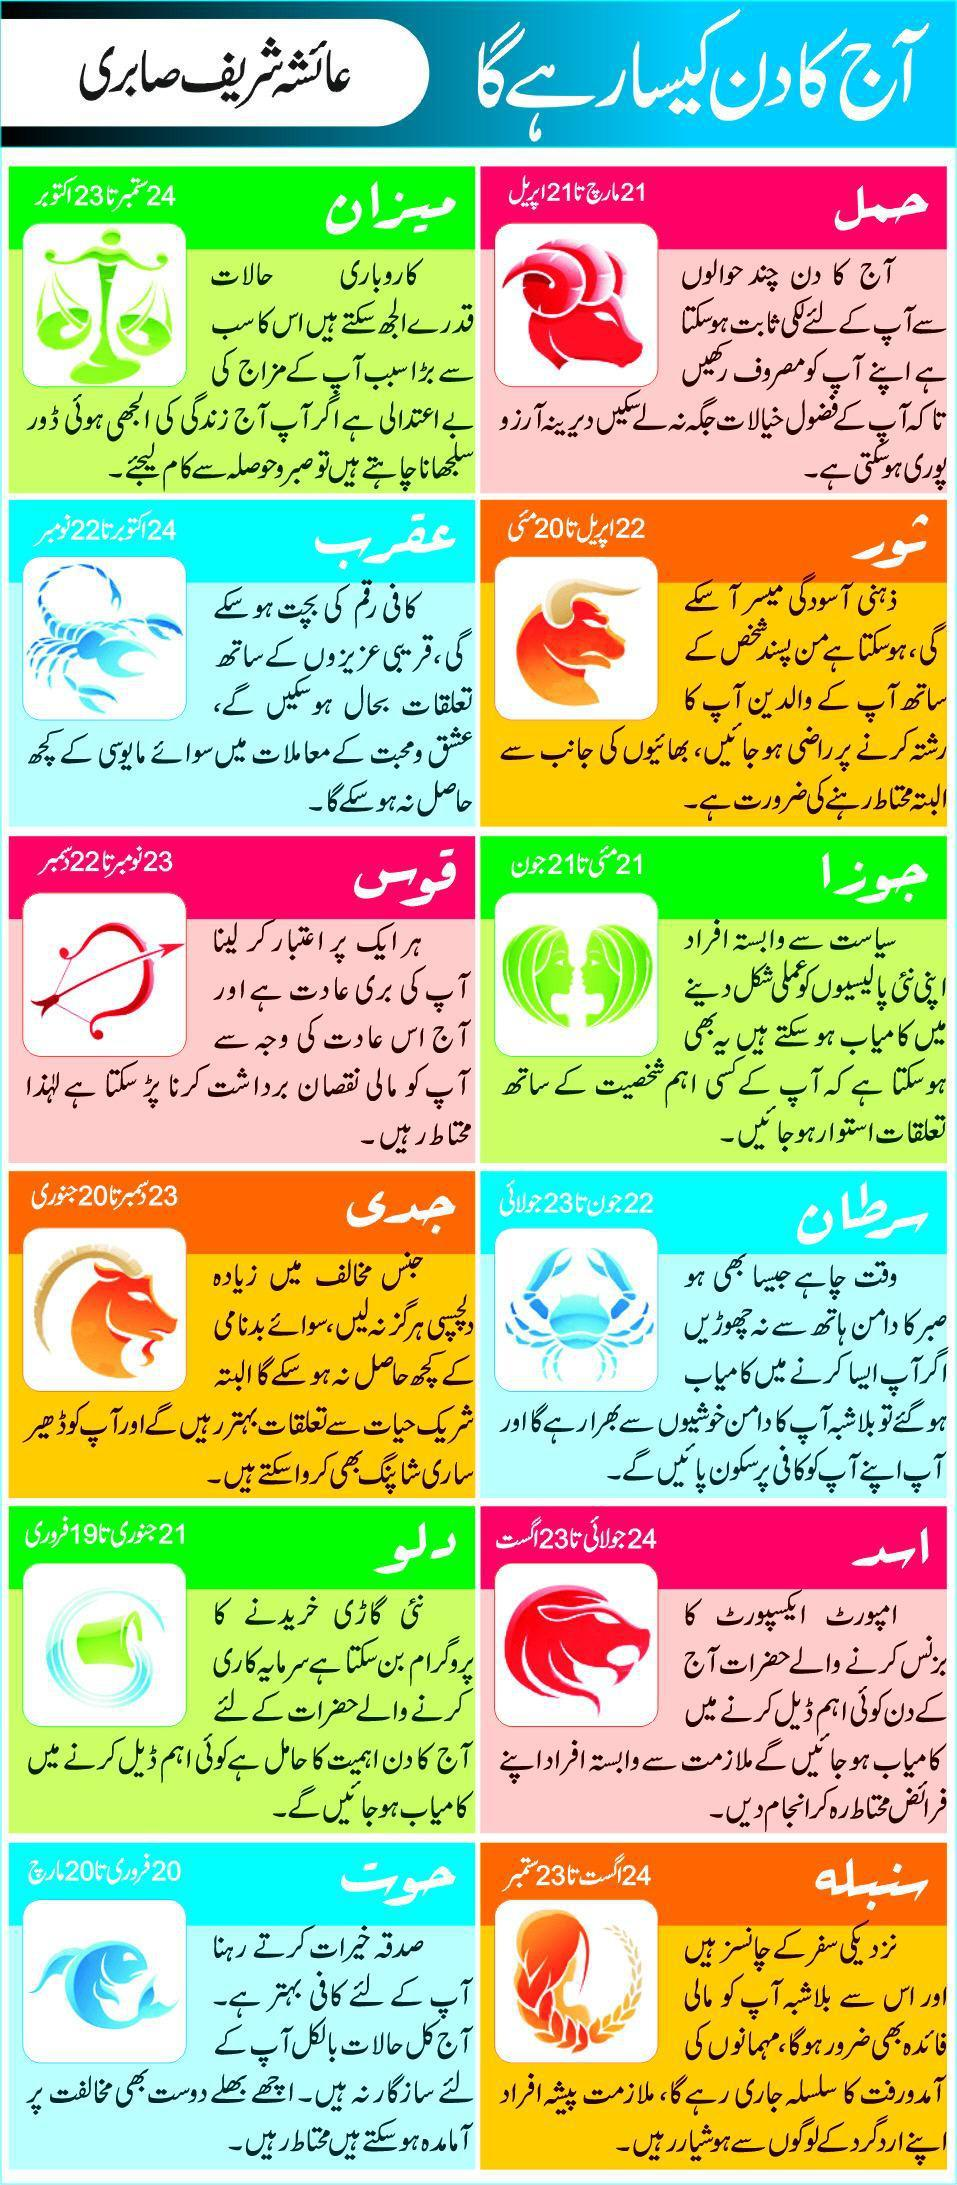 Today Daily Horoscope in Urdu 10 December 2015